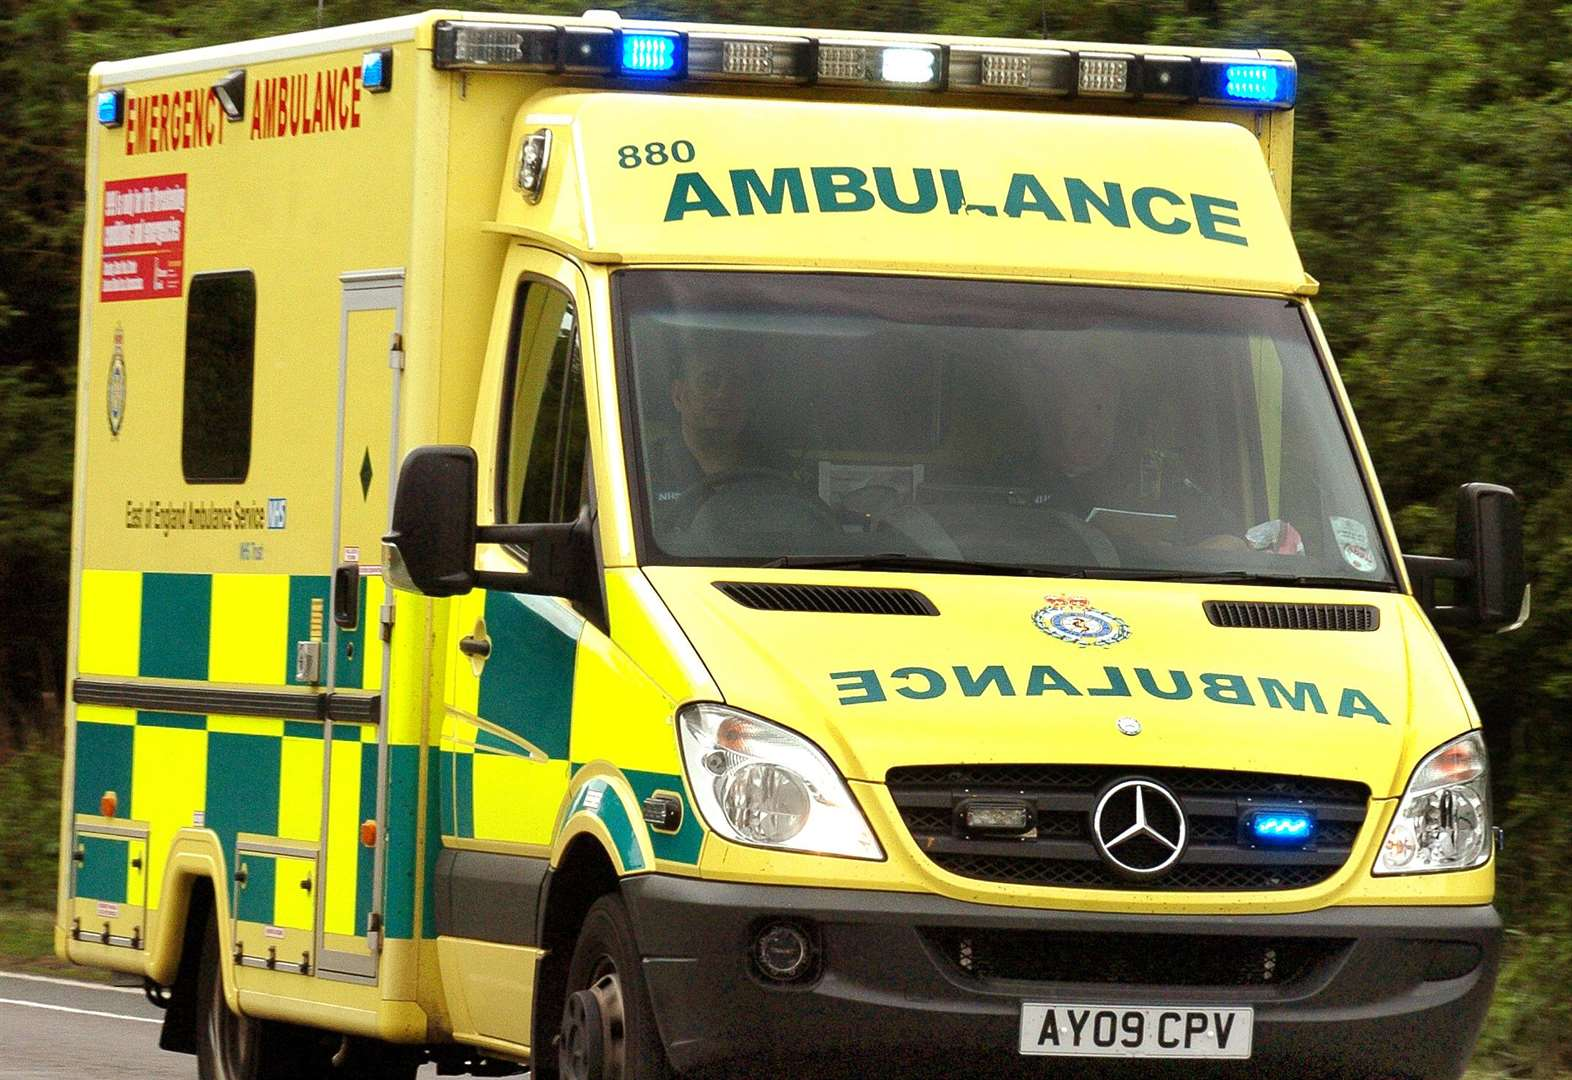 Trust bids for £38.6m to improve ambulance stations